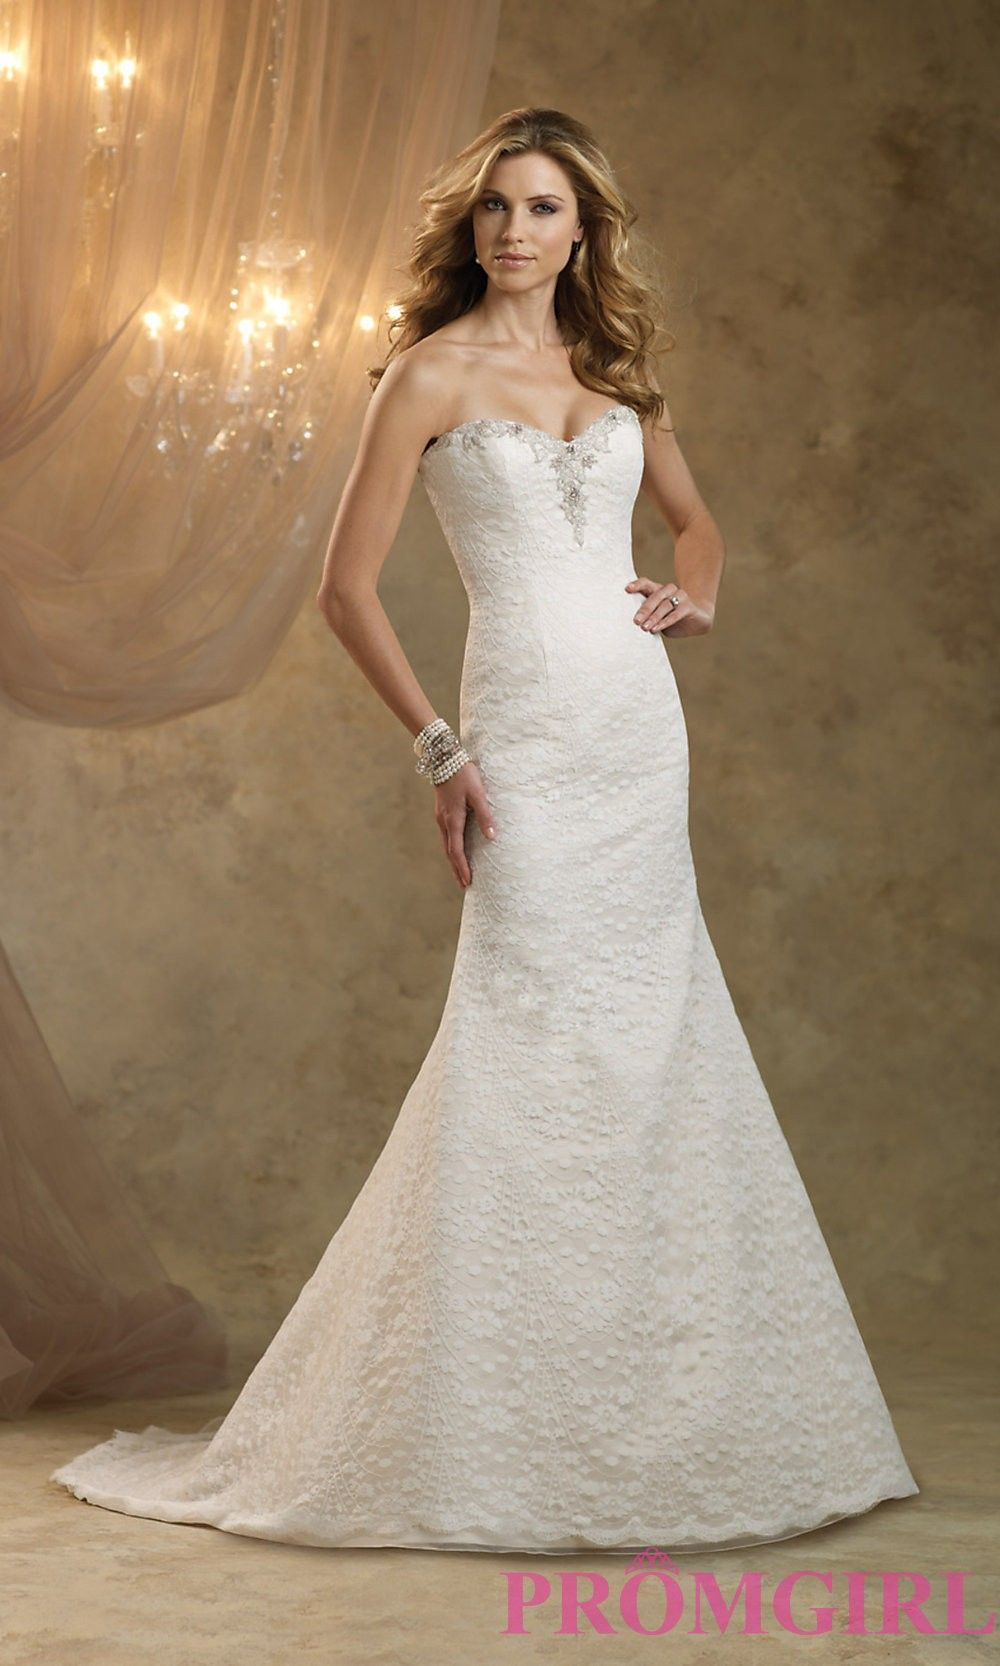 Strapless Lace Gown by Kathy Ireland